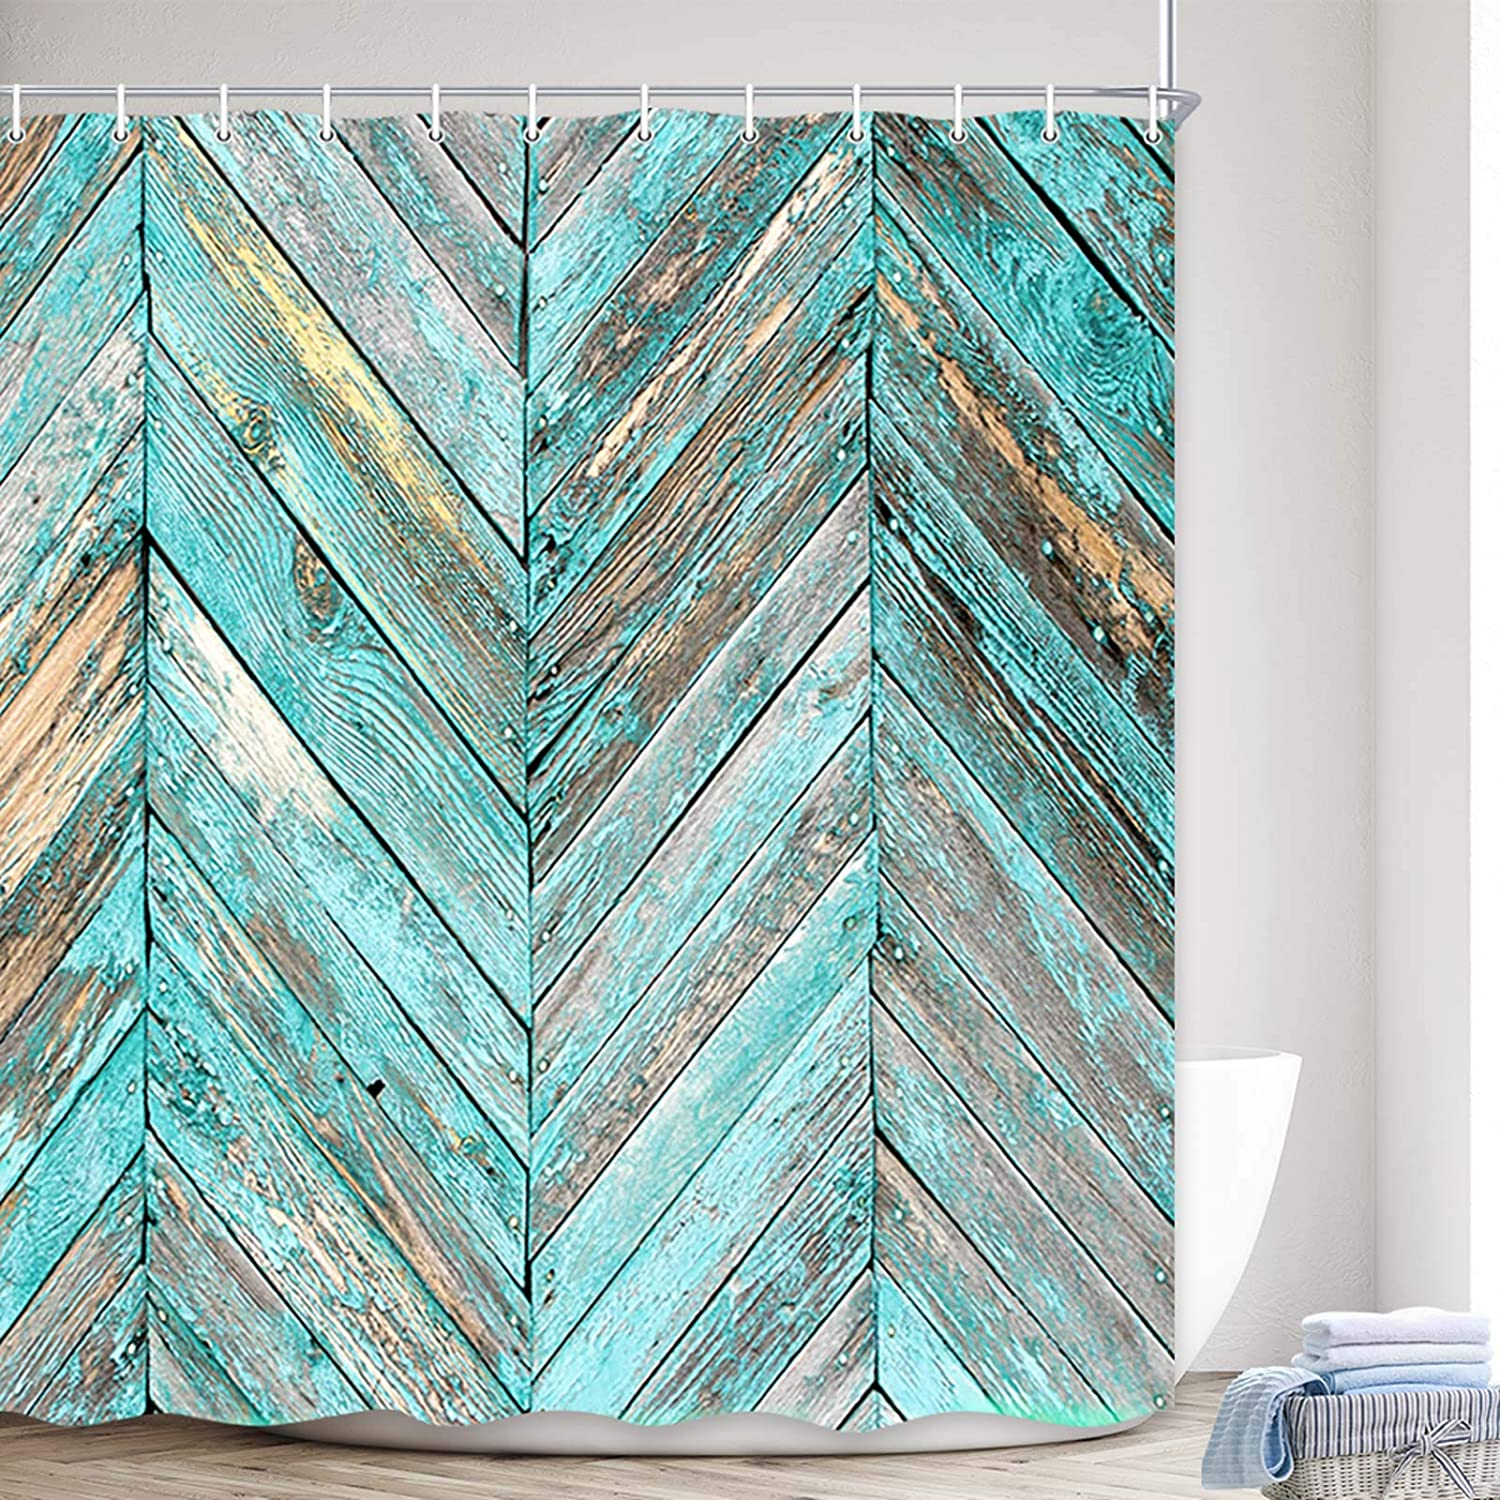 MERCHR Rustic Shower Curtain, Vintage Teal Grey Striped Wooden Plank for Bathroom Decor, Farmhouse Wood Waterproof Polyester Fabric Western Country Barn Door for Rural Life Bath Curtain,69X70in